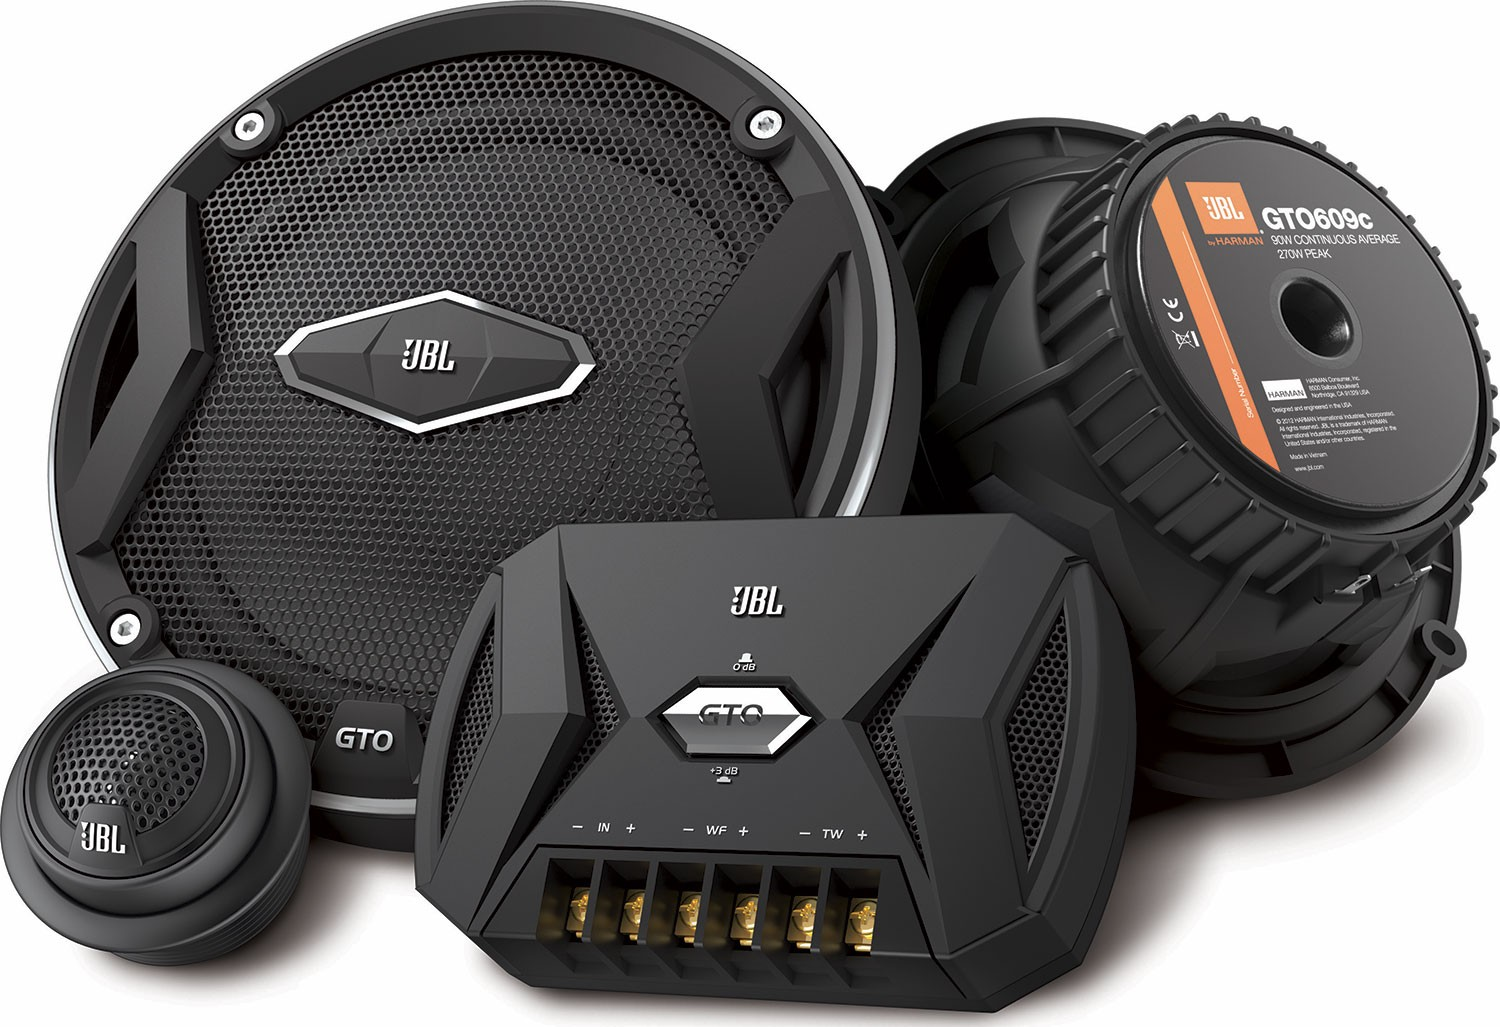 jbl gto best car speakers